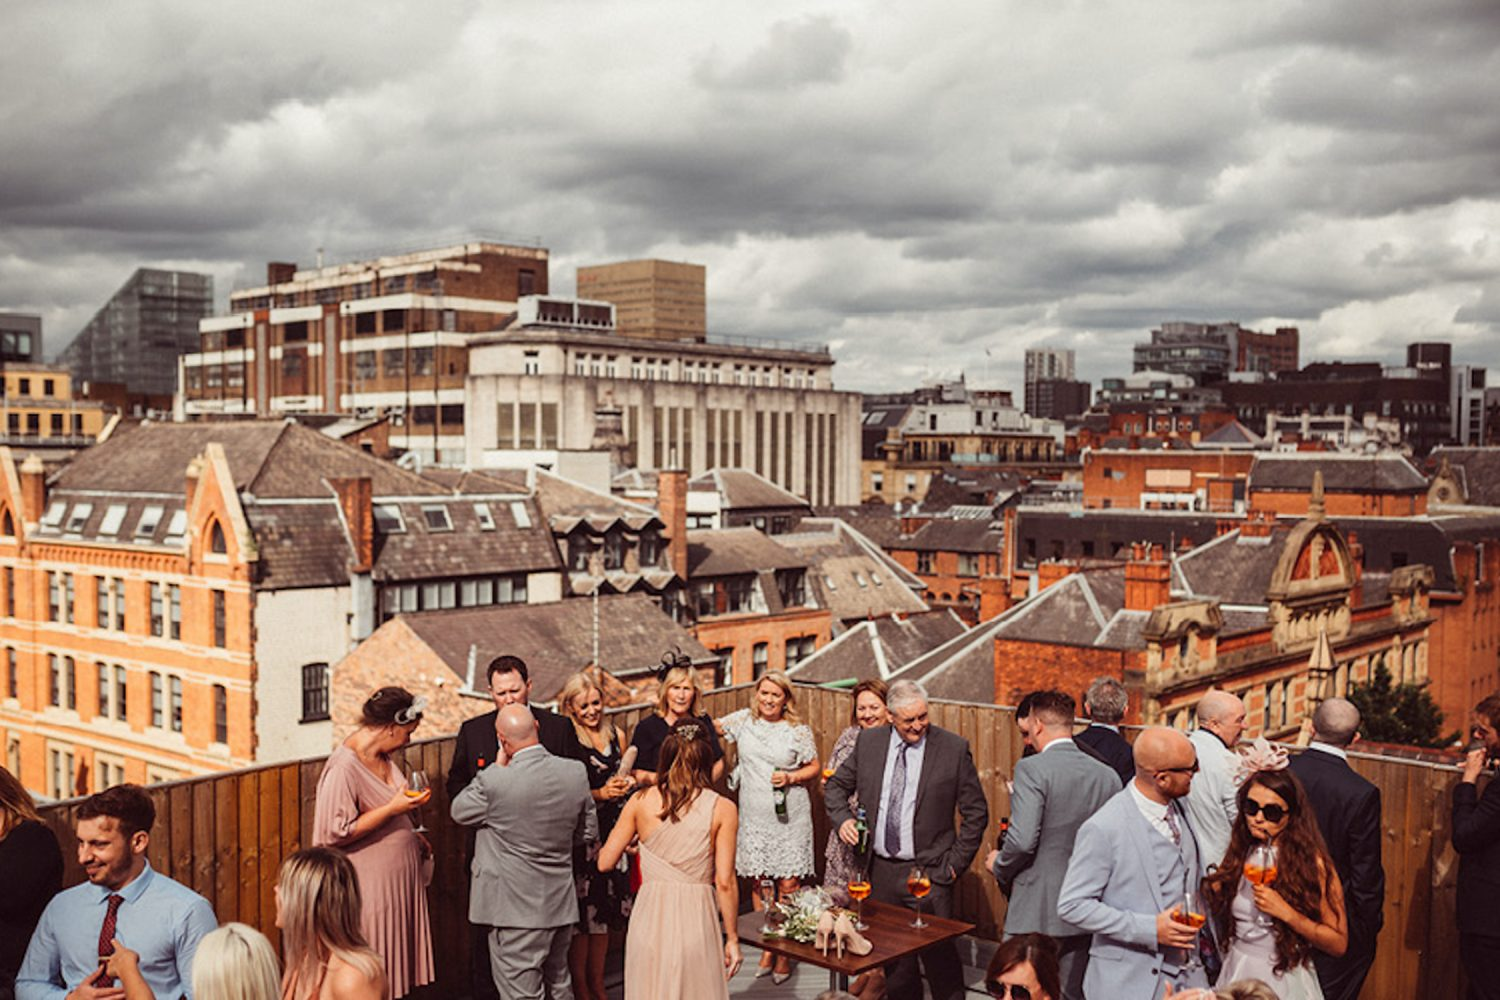 John Rylands Rooftop Terrace Manchester Hall